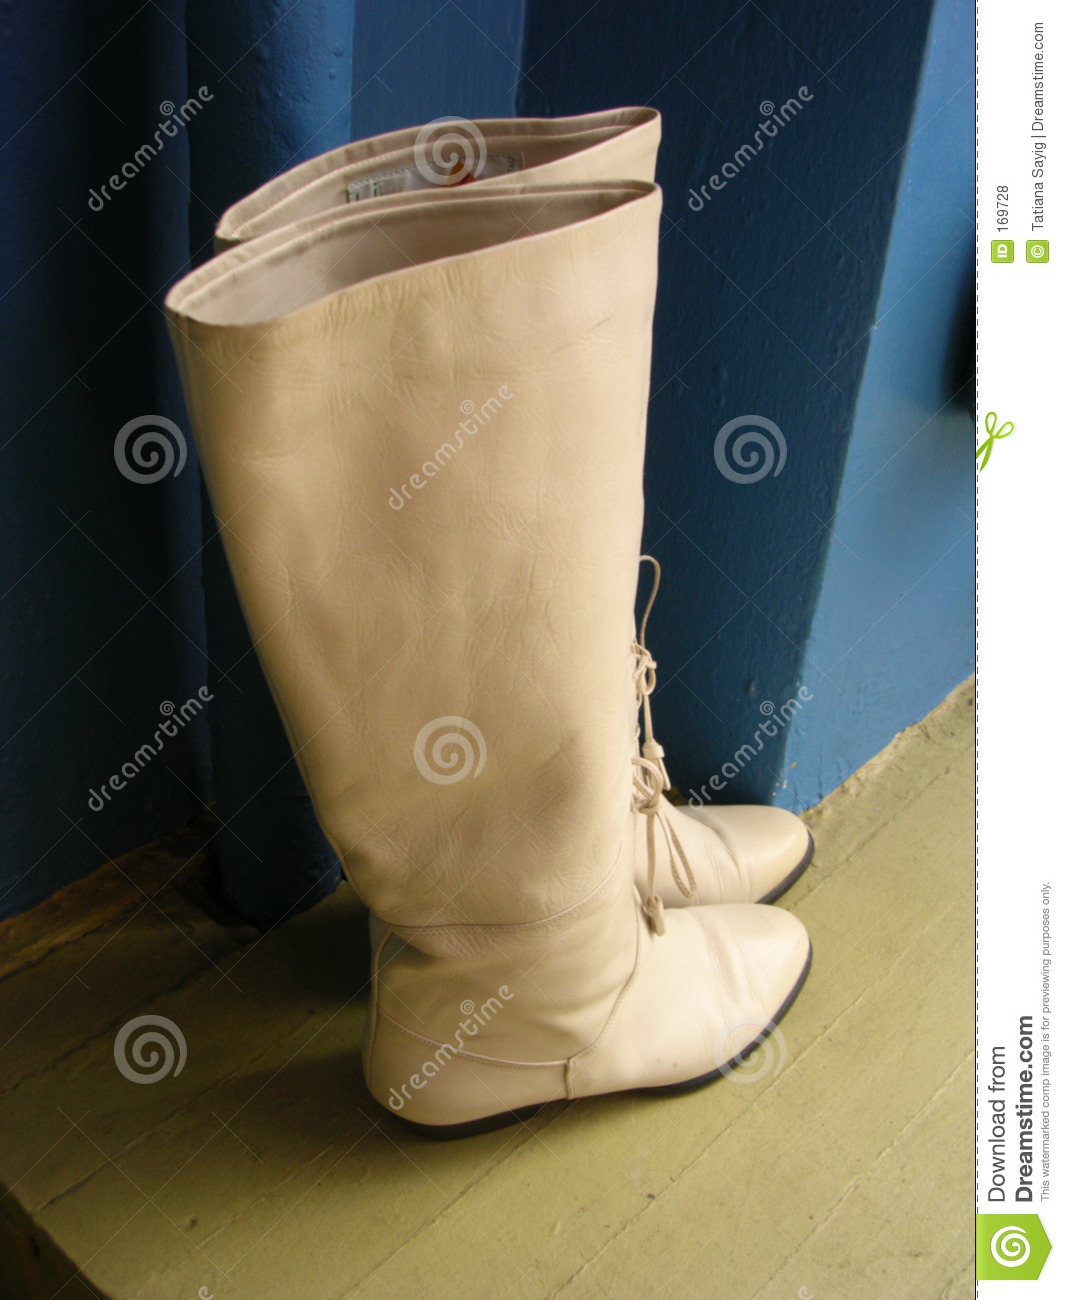 Retro Beige Boots Against Blue Wall